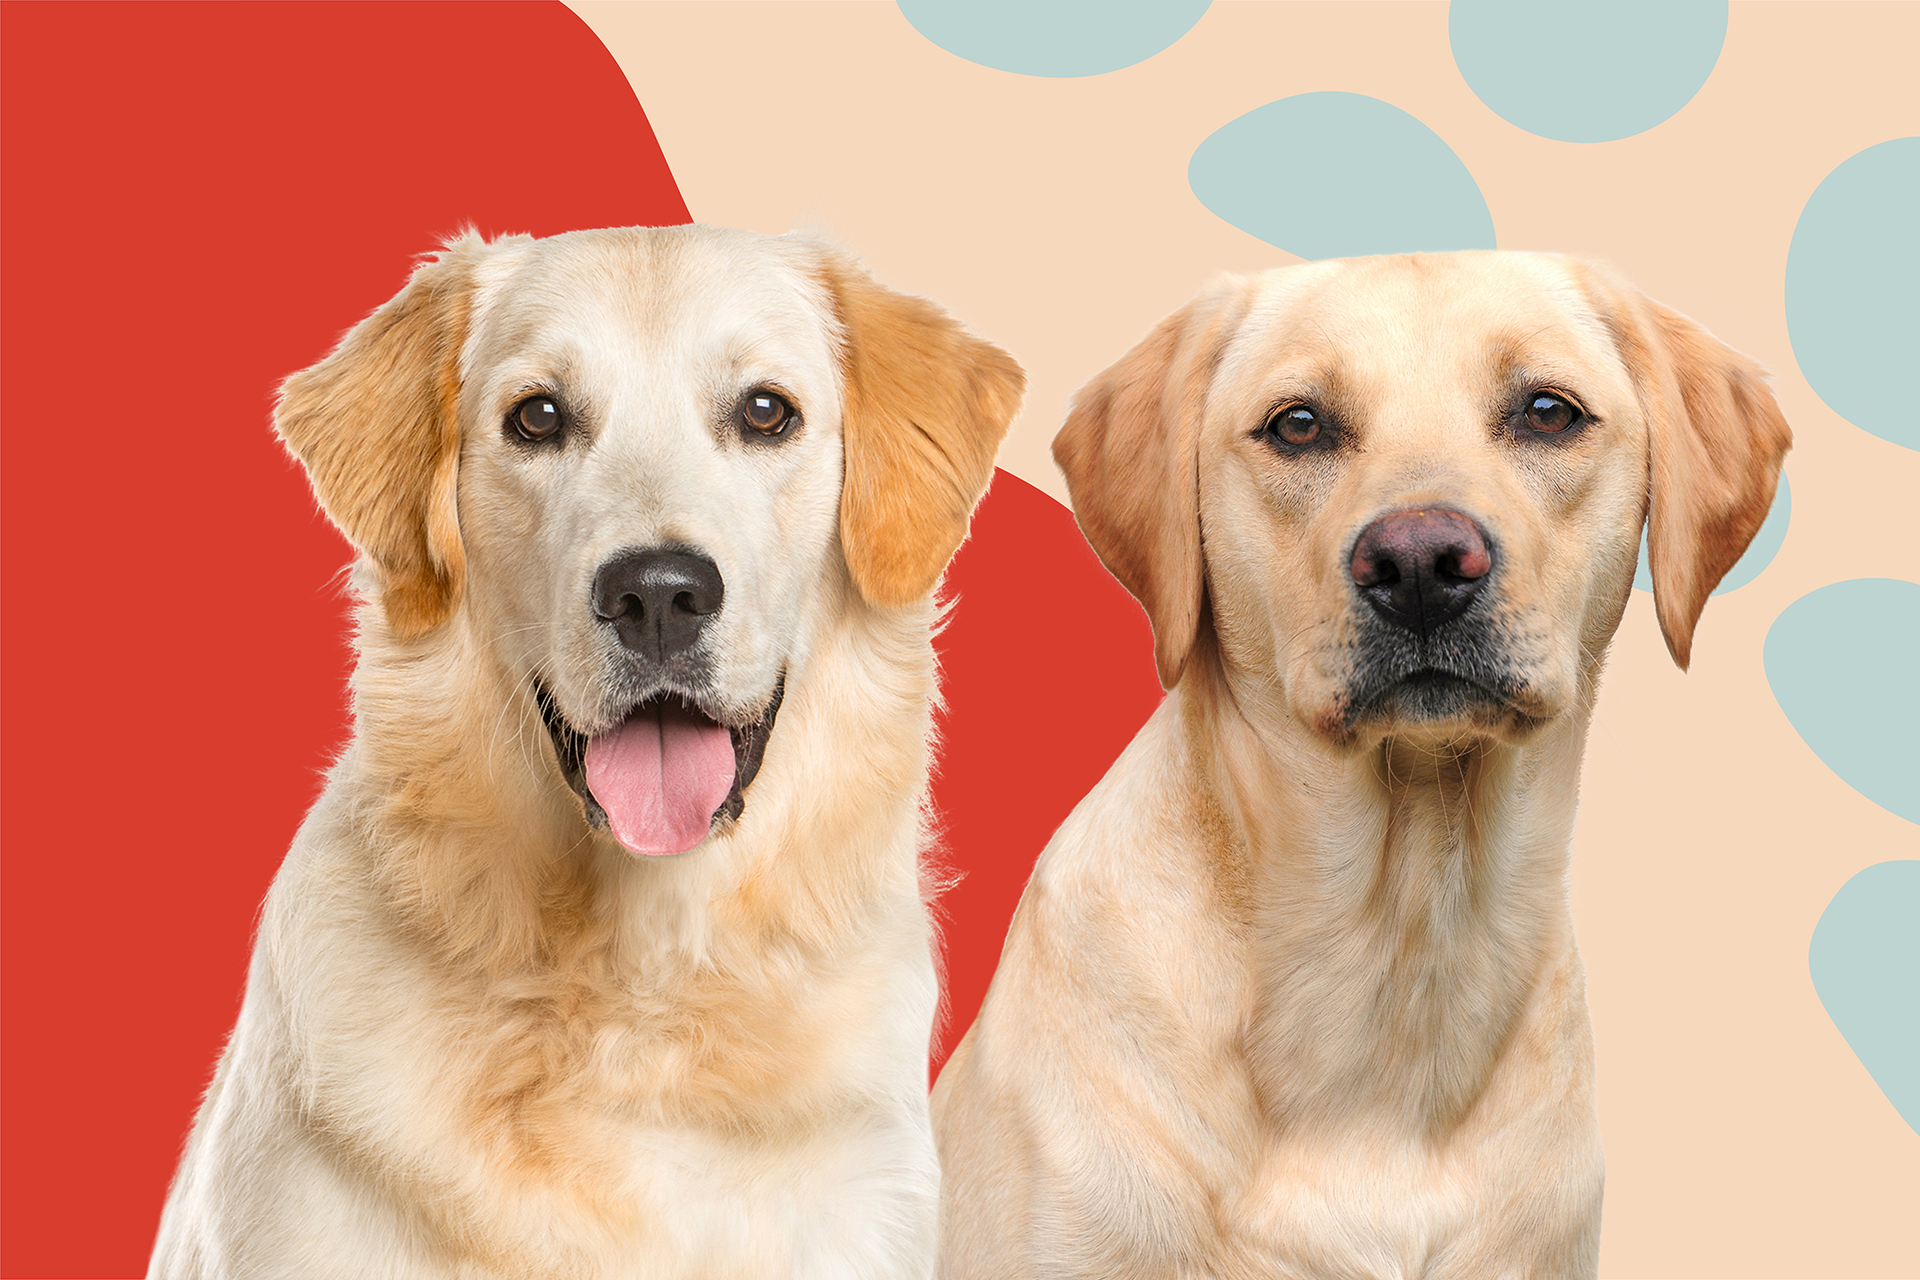 golden retriever and yellow lab against illustrative background